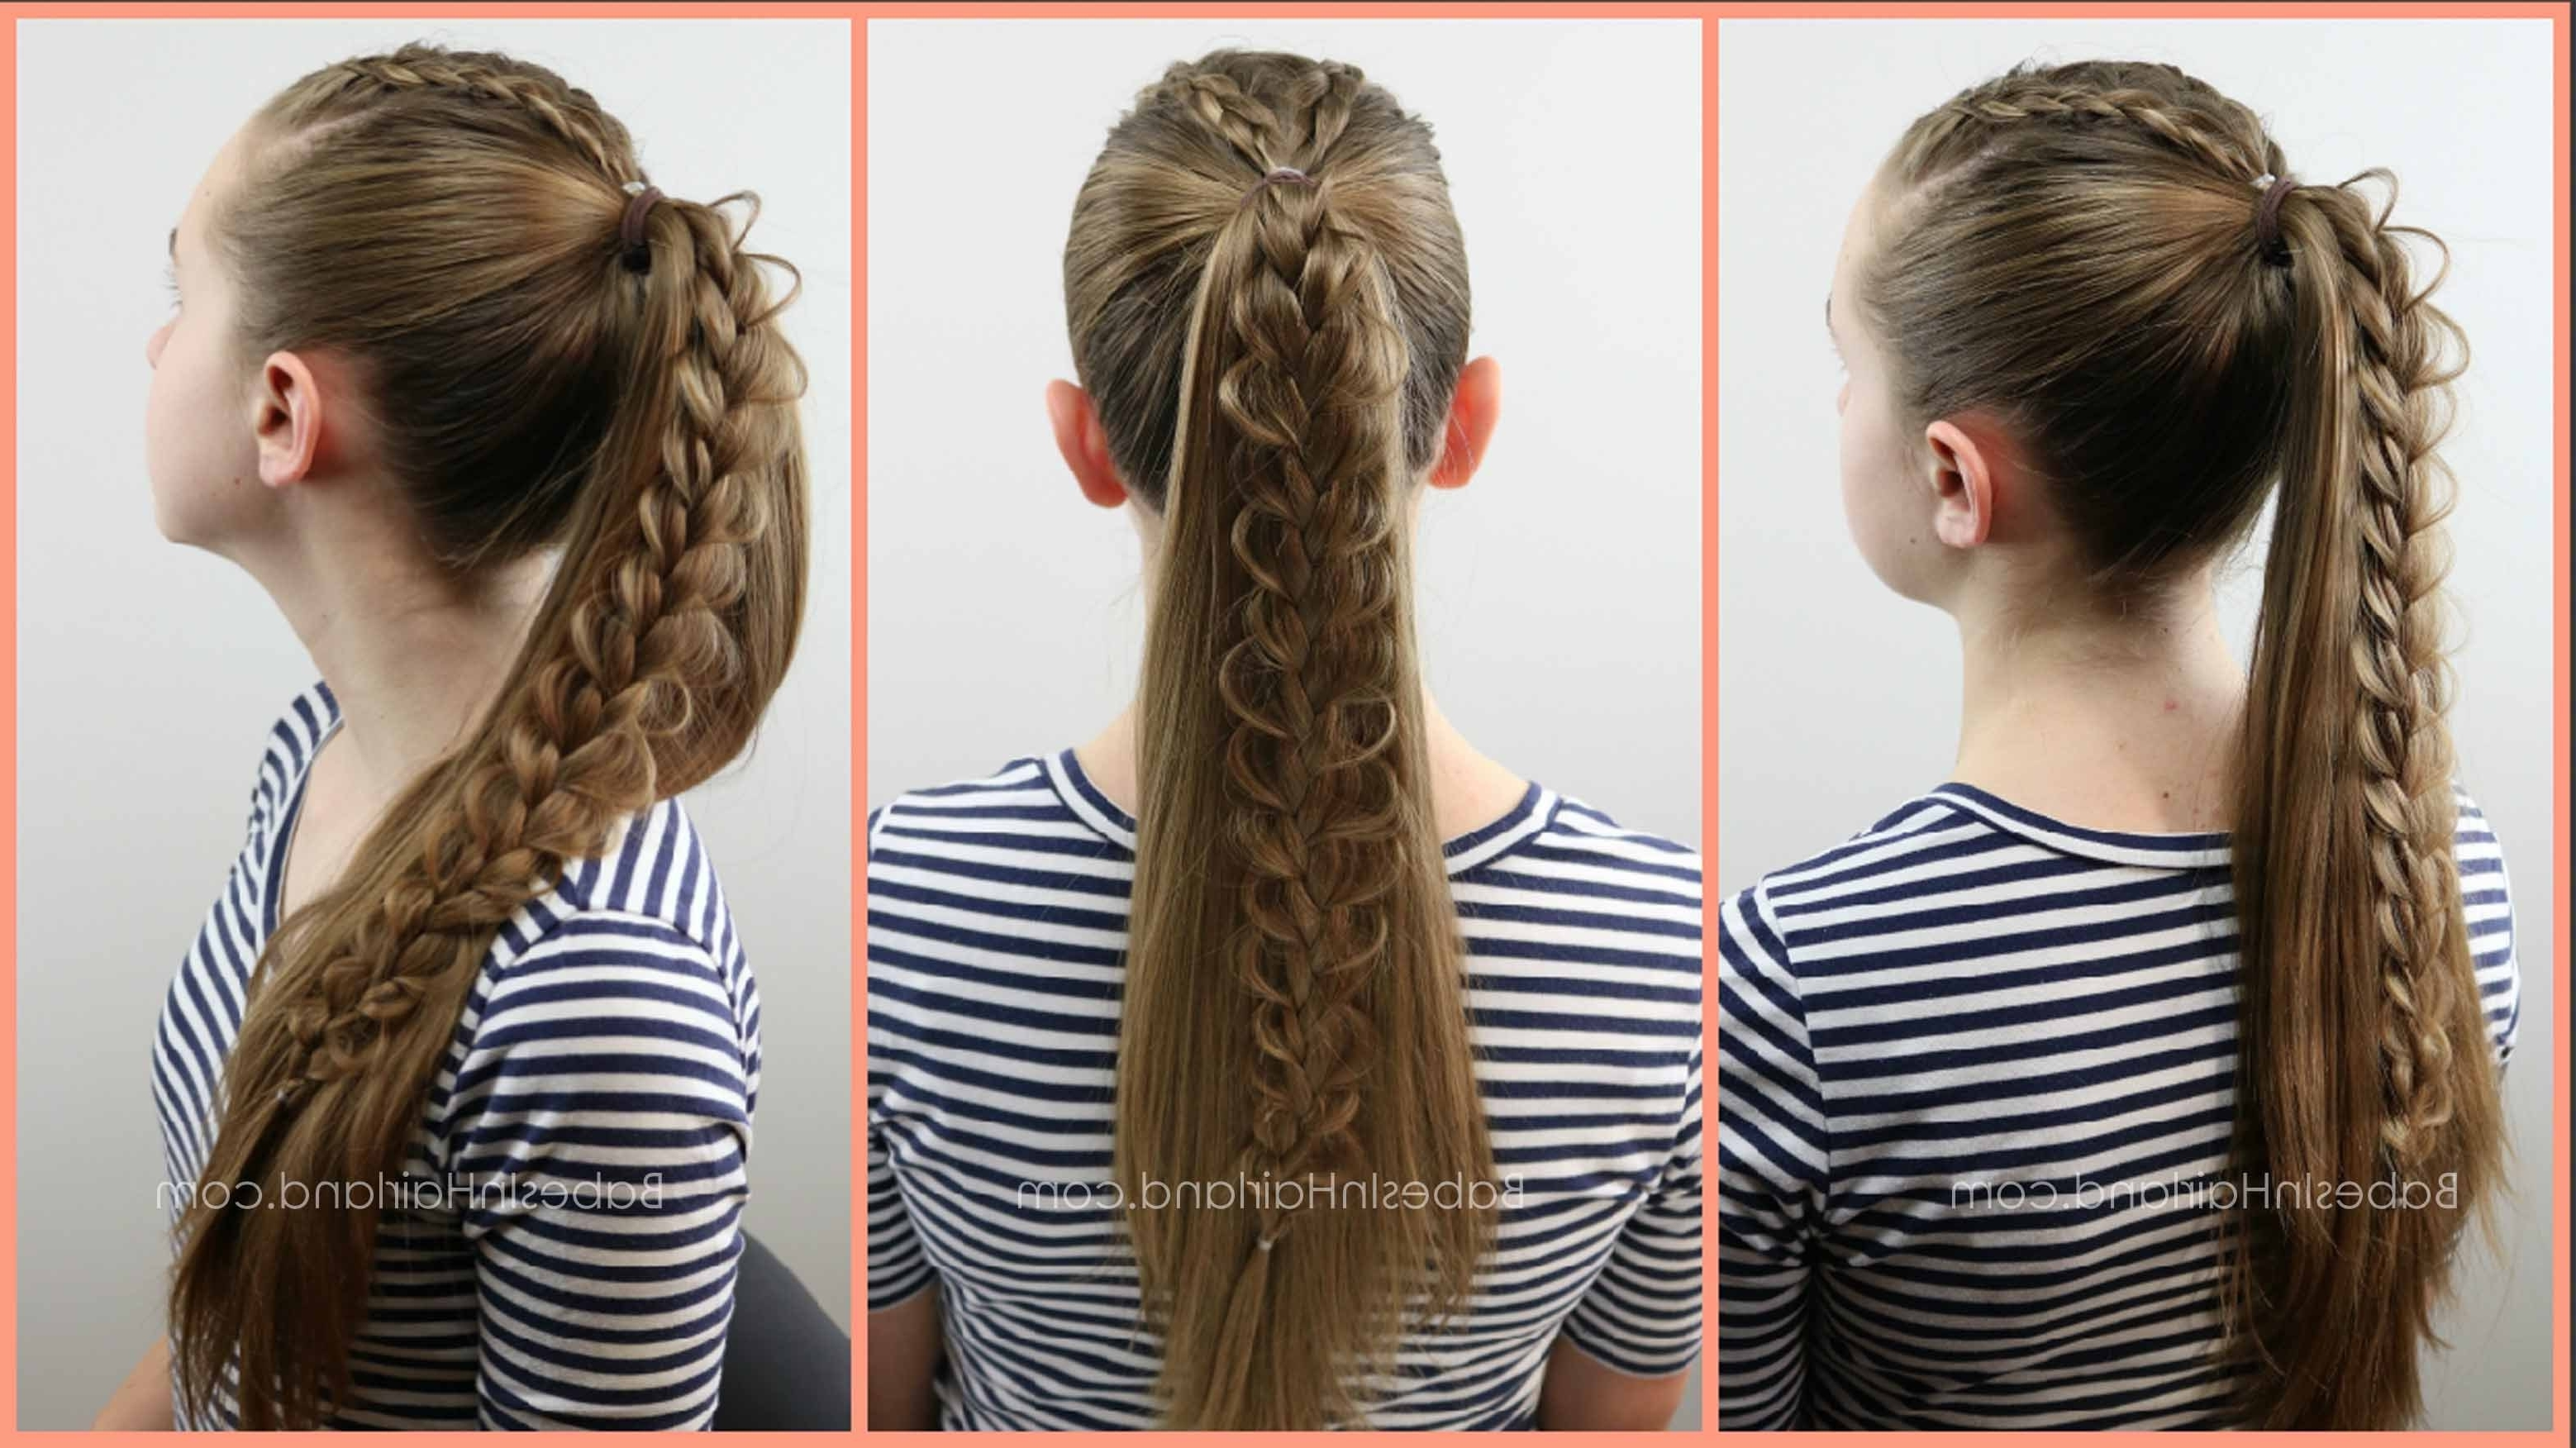 2 Dutch Braids 5 Different Hairstyles (View 9 of 15)